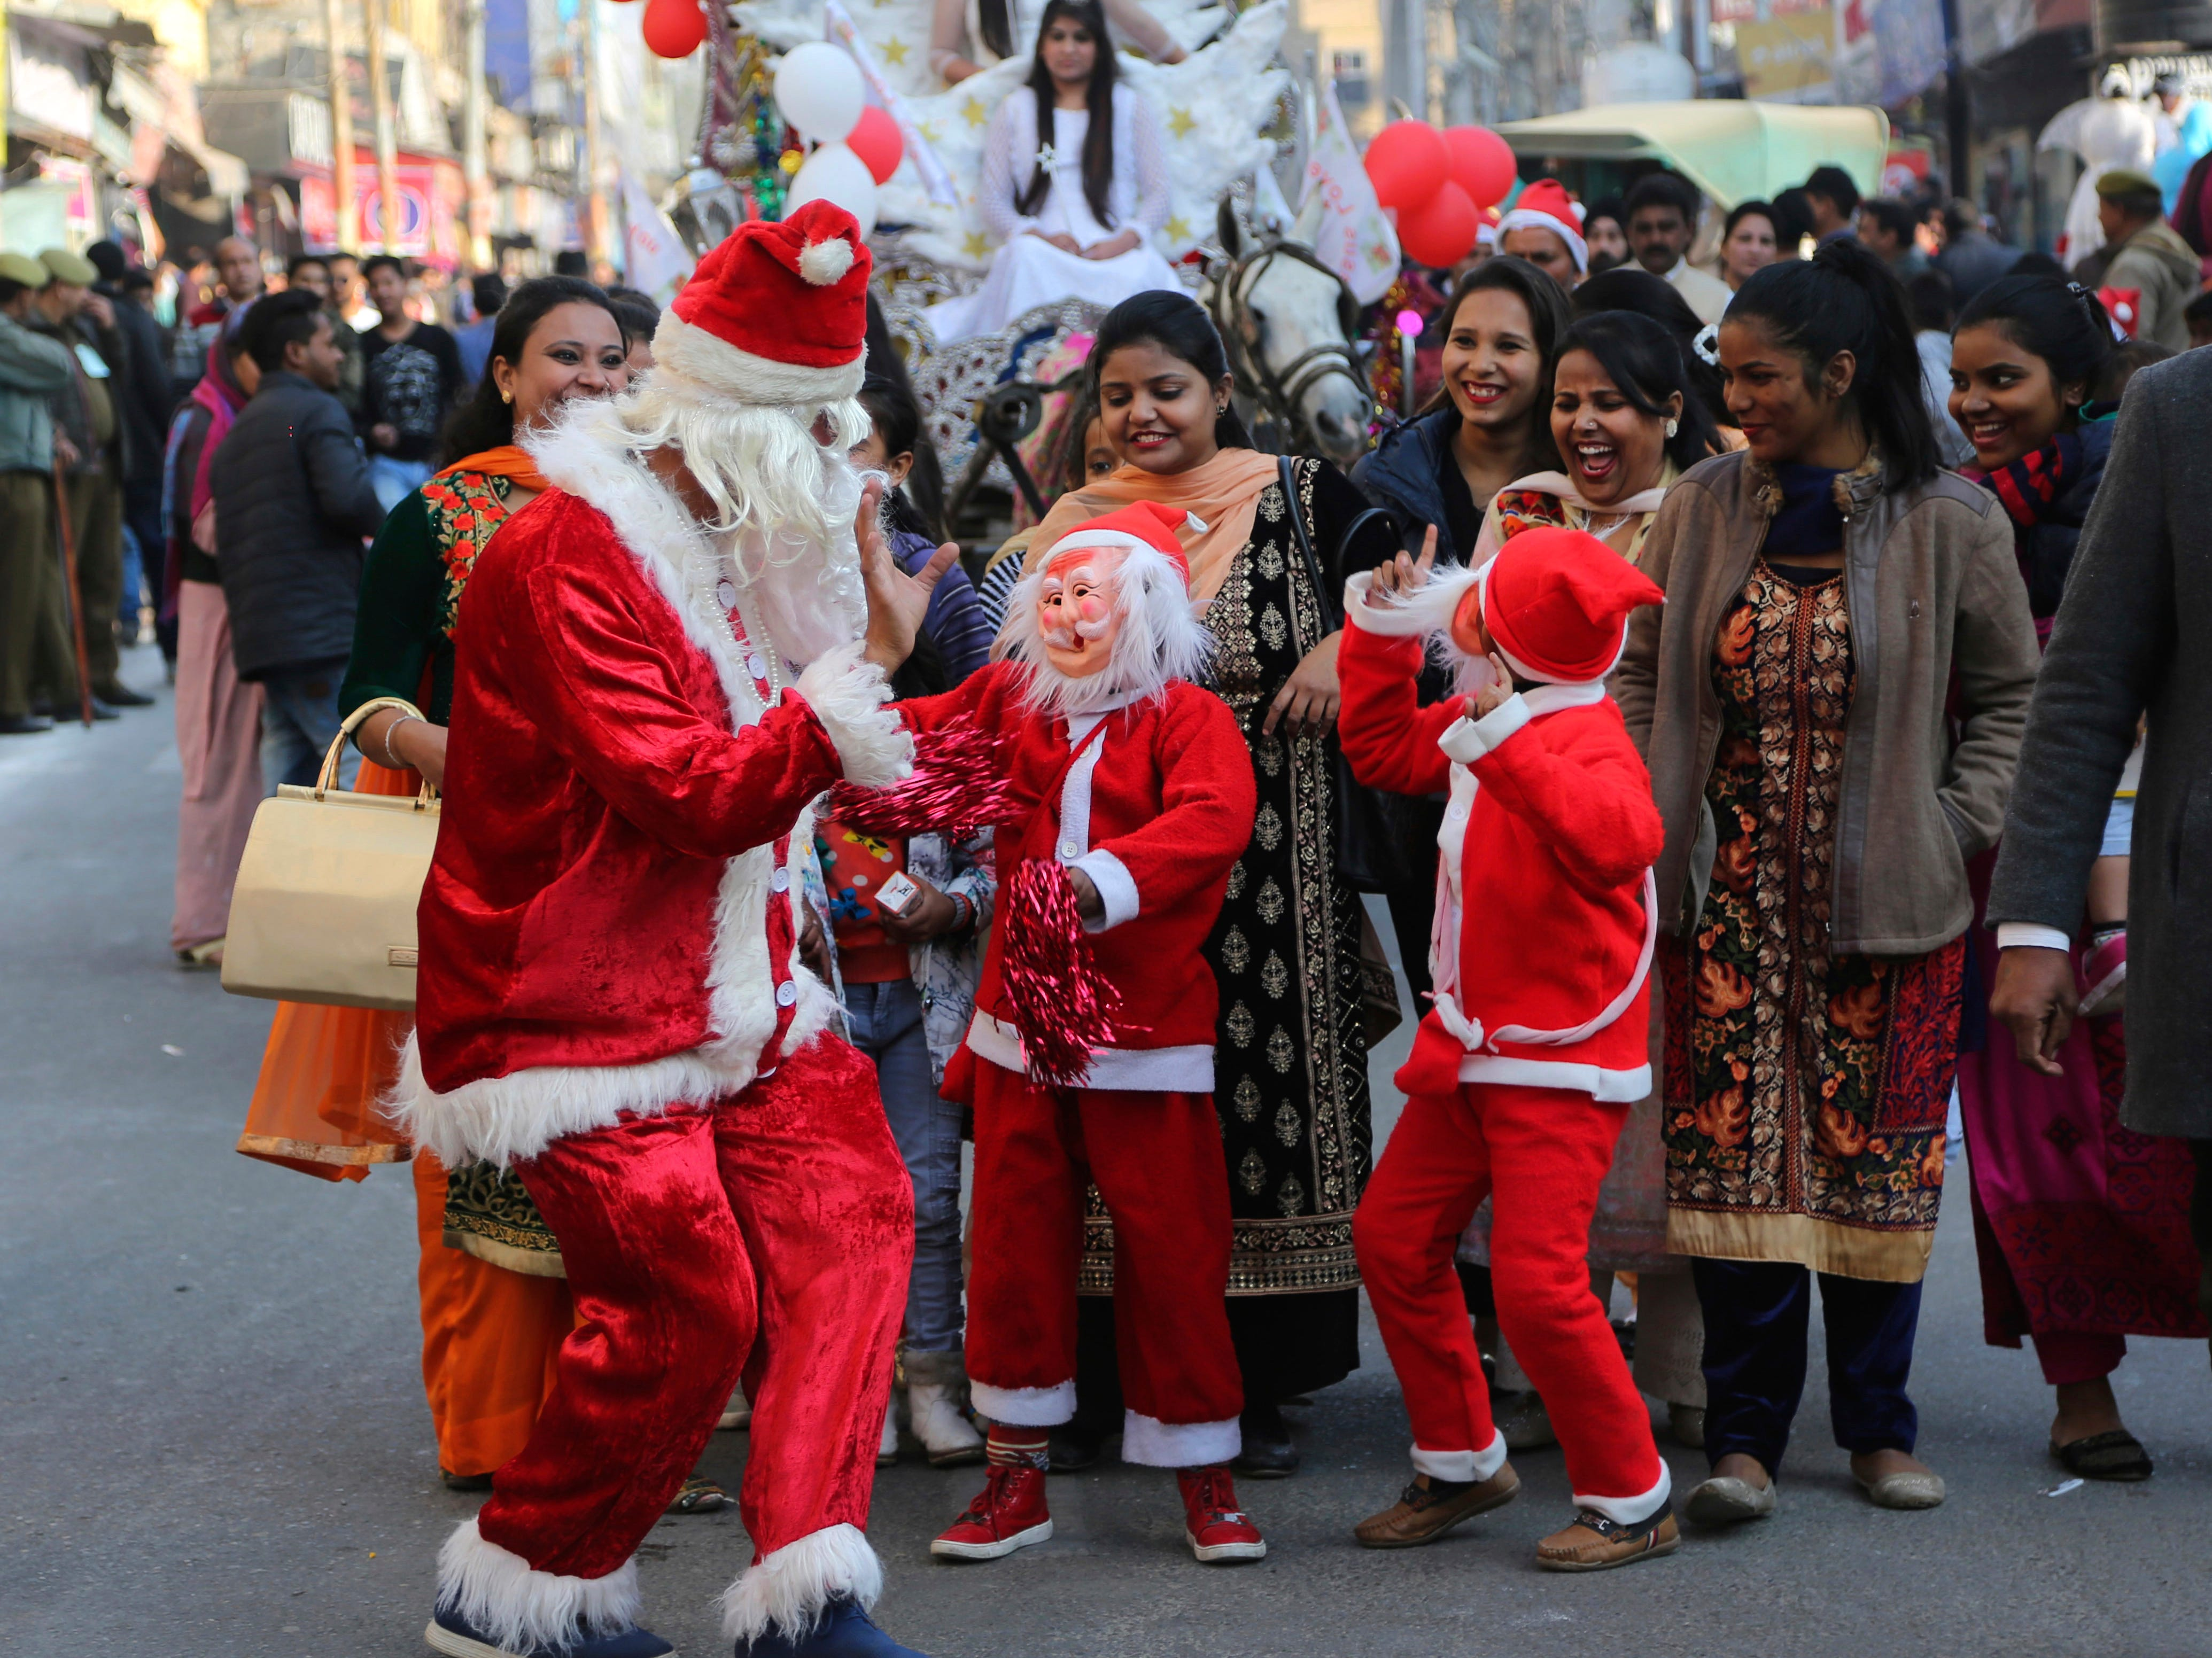 An Indian man and children dressed as Santa dance to participate in a procession to celebrate Christmas in Jammu, India, Saturday, Dec. 22, 2018. Though Christians make up only about 2 percent of India's 1 billion-plus population, Christmas is a national holiday celebrated with much fanfare.